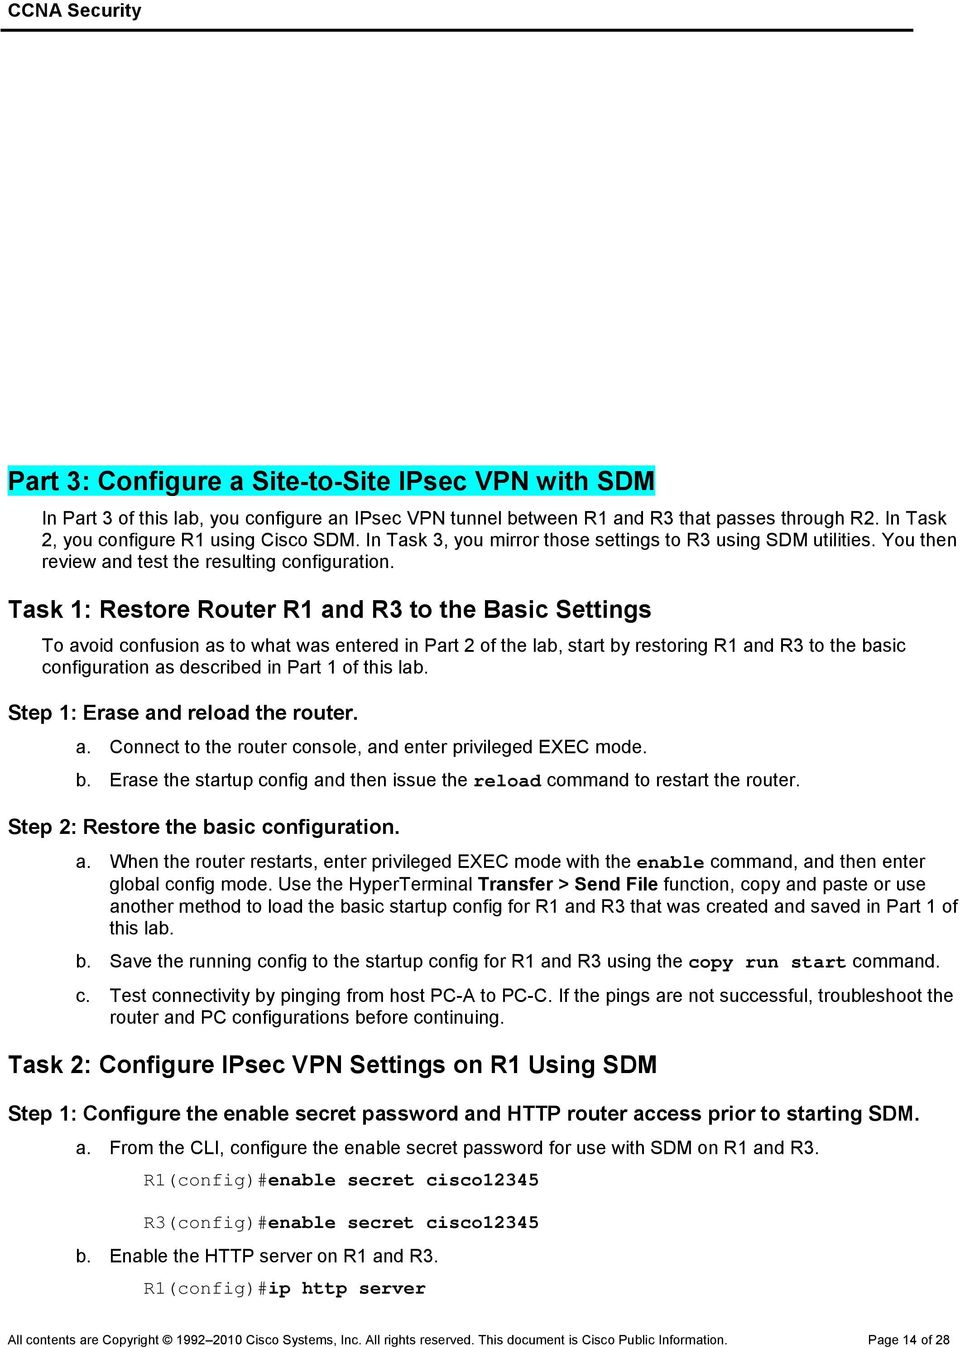 Chapter 8 Lab A: Configuring a Site-to-Site VPN Using Cisco